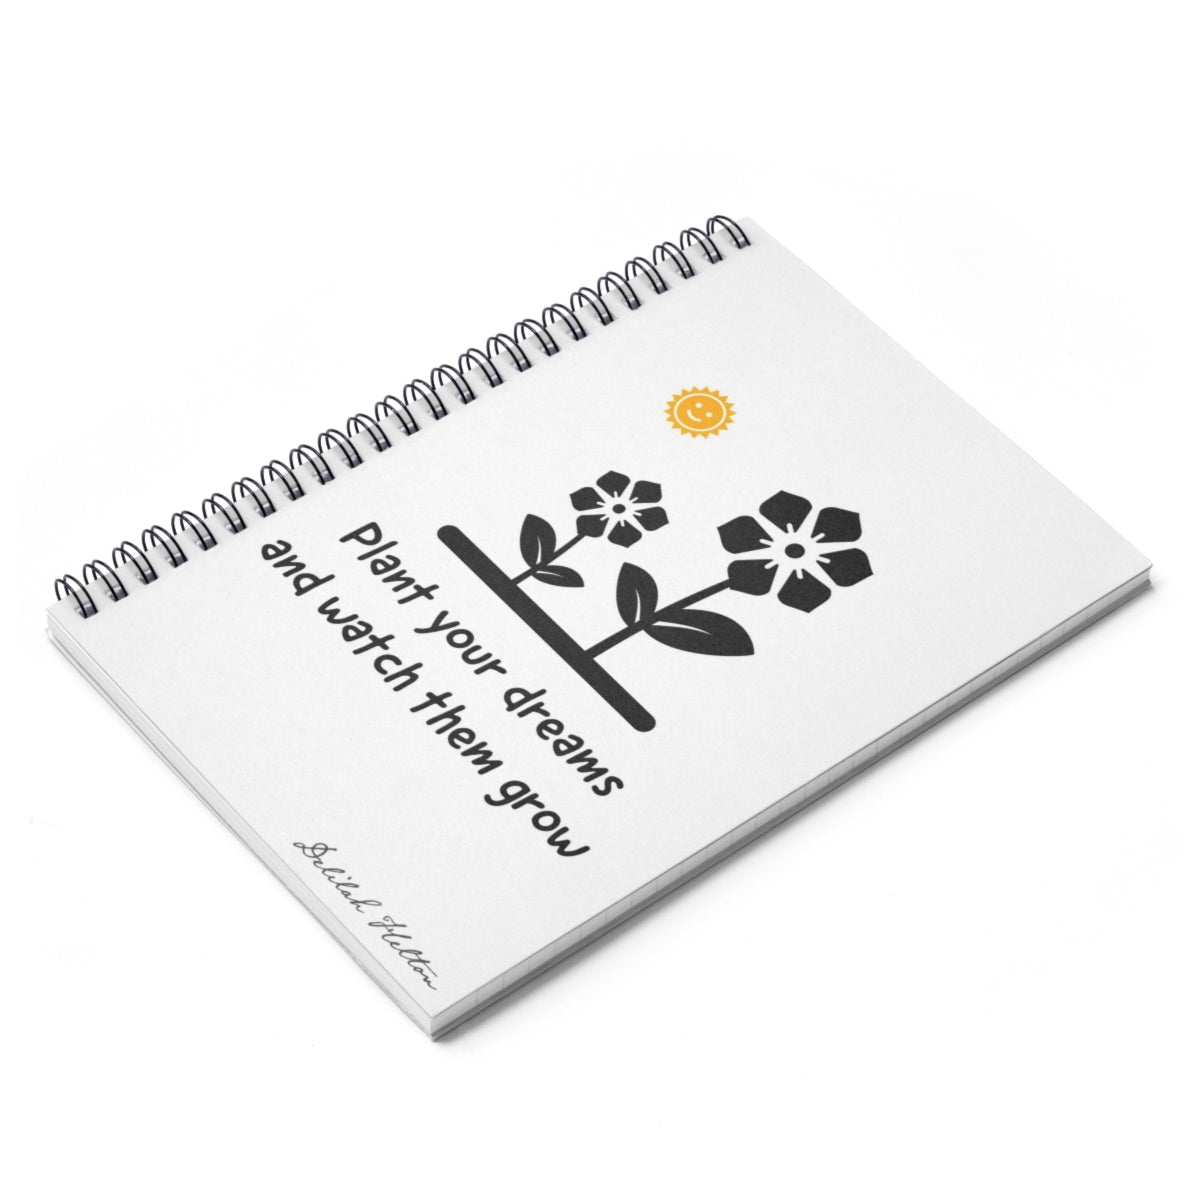 Plant Your Dreams Spiral Notebook - Ruled Line